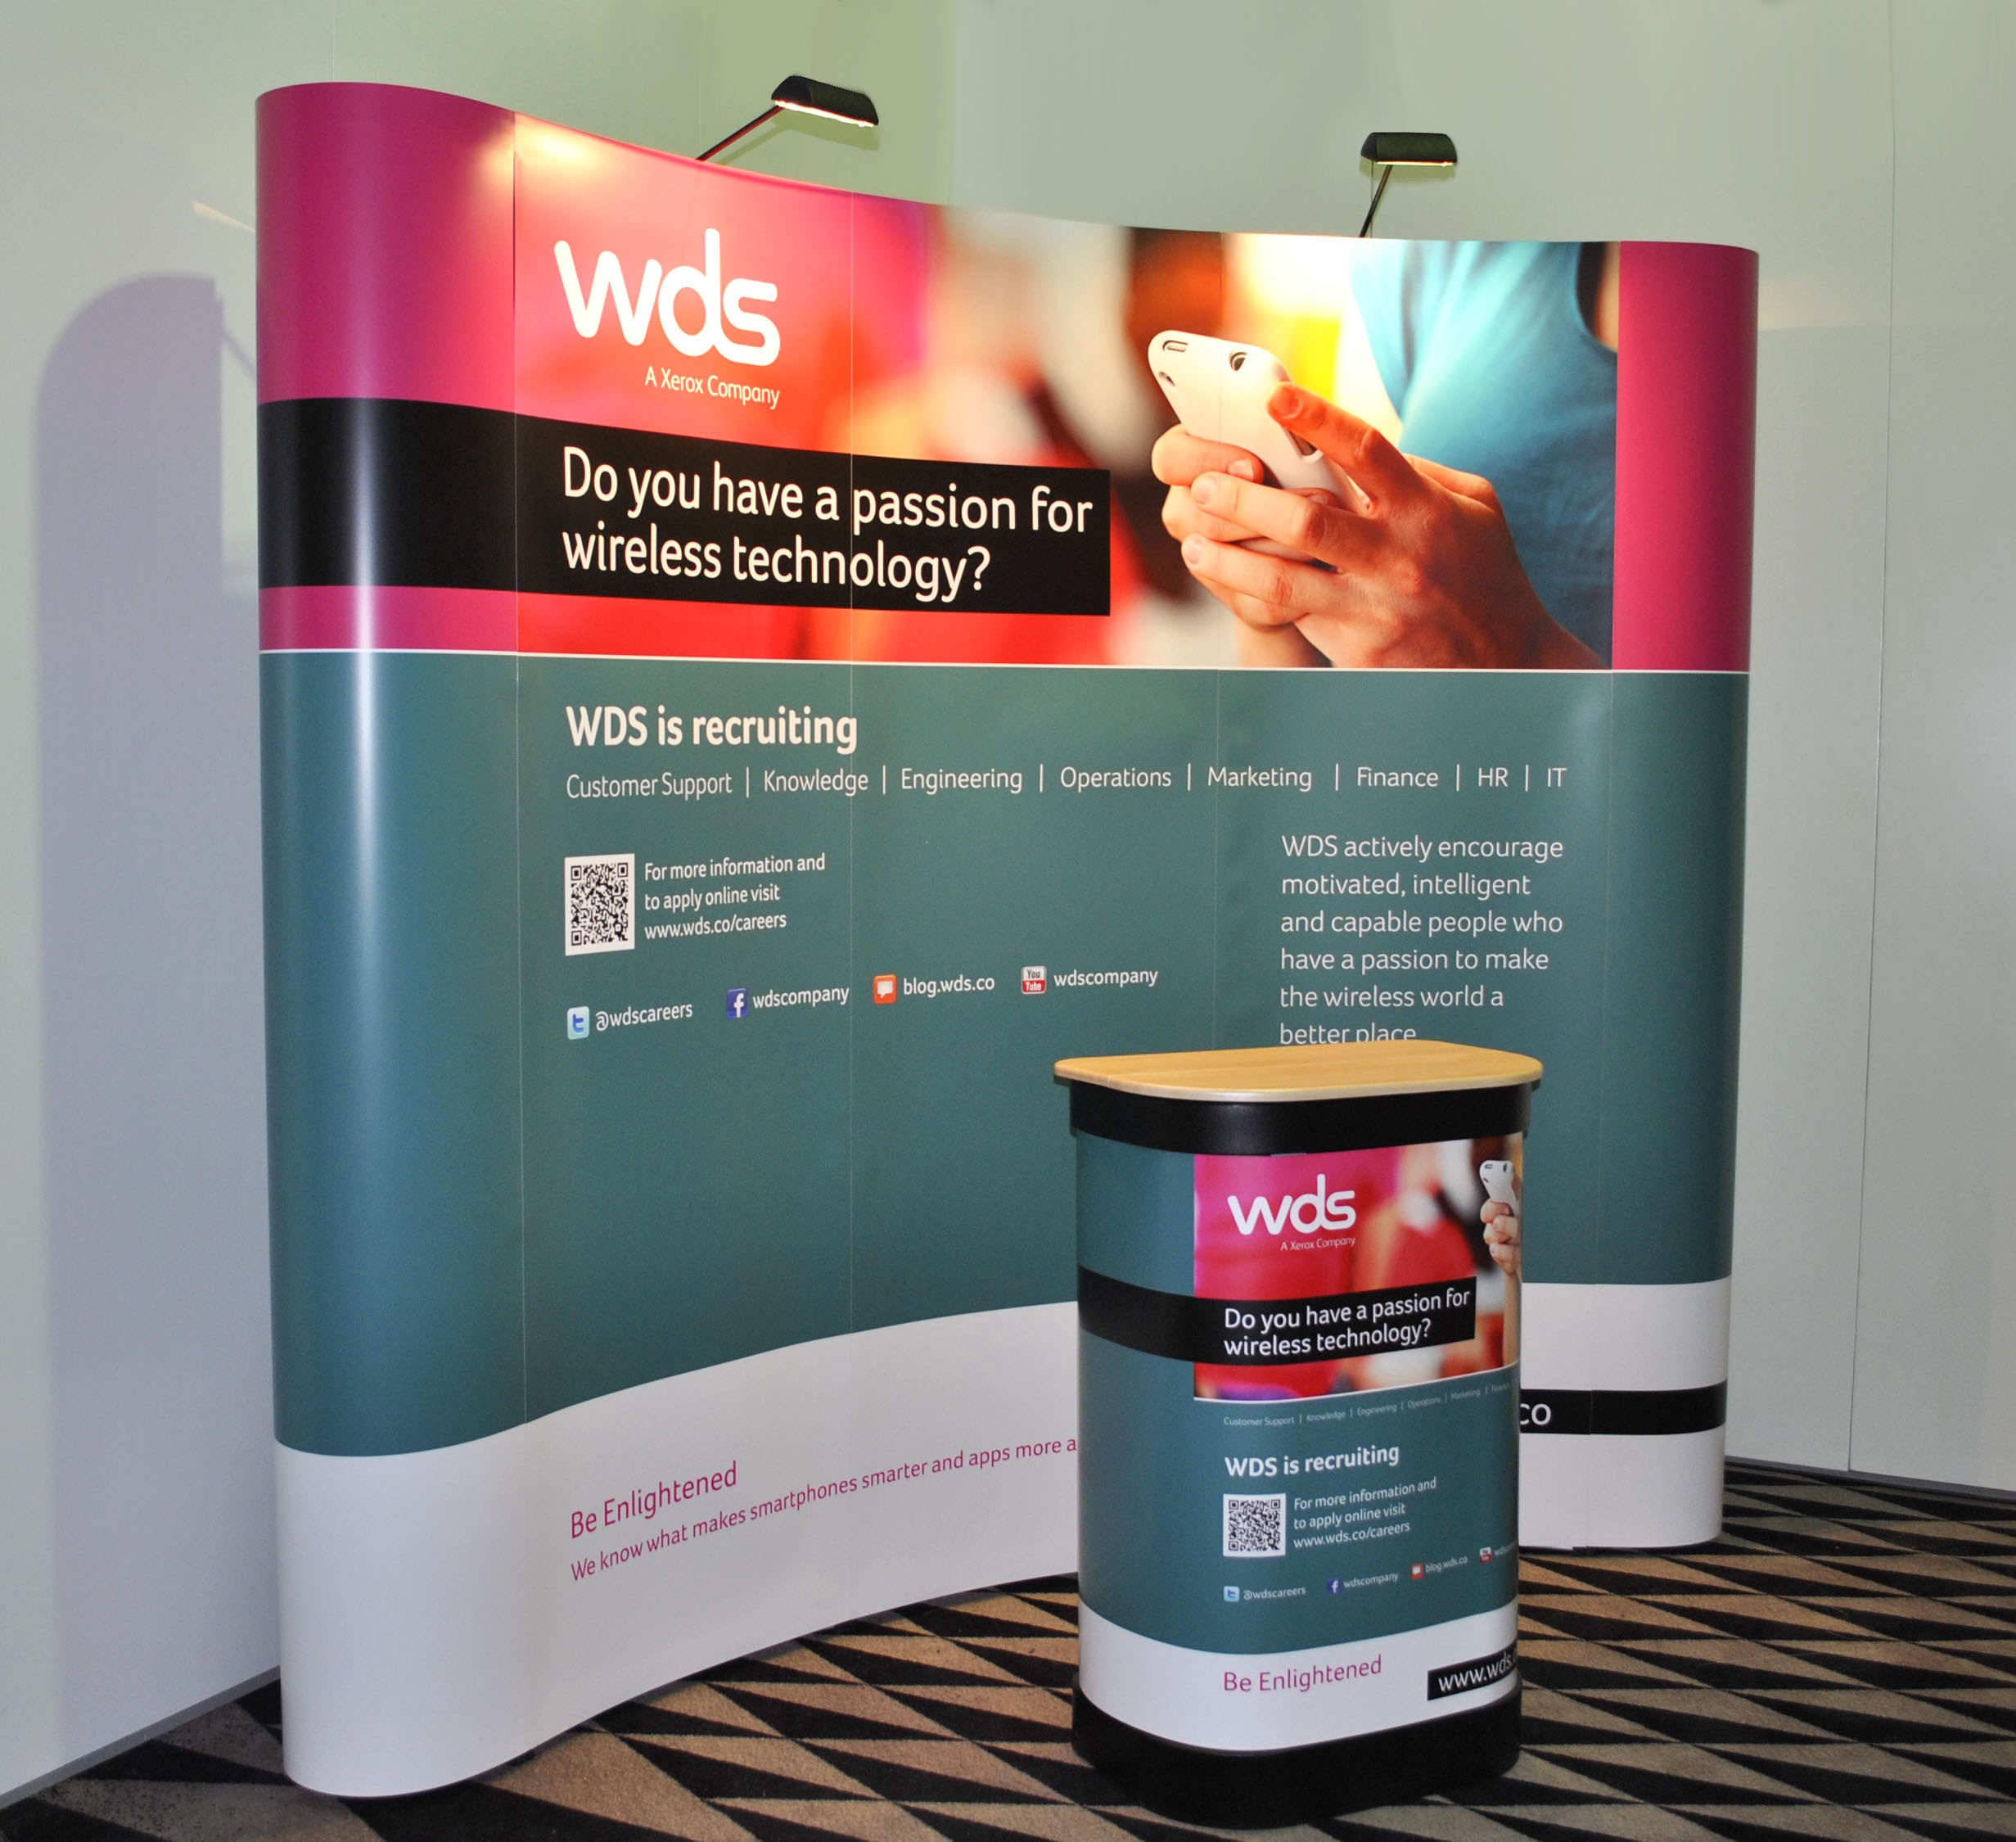 What Makes Pop Up Banners Such An Effective Marketing Tool